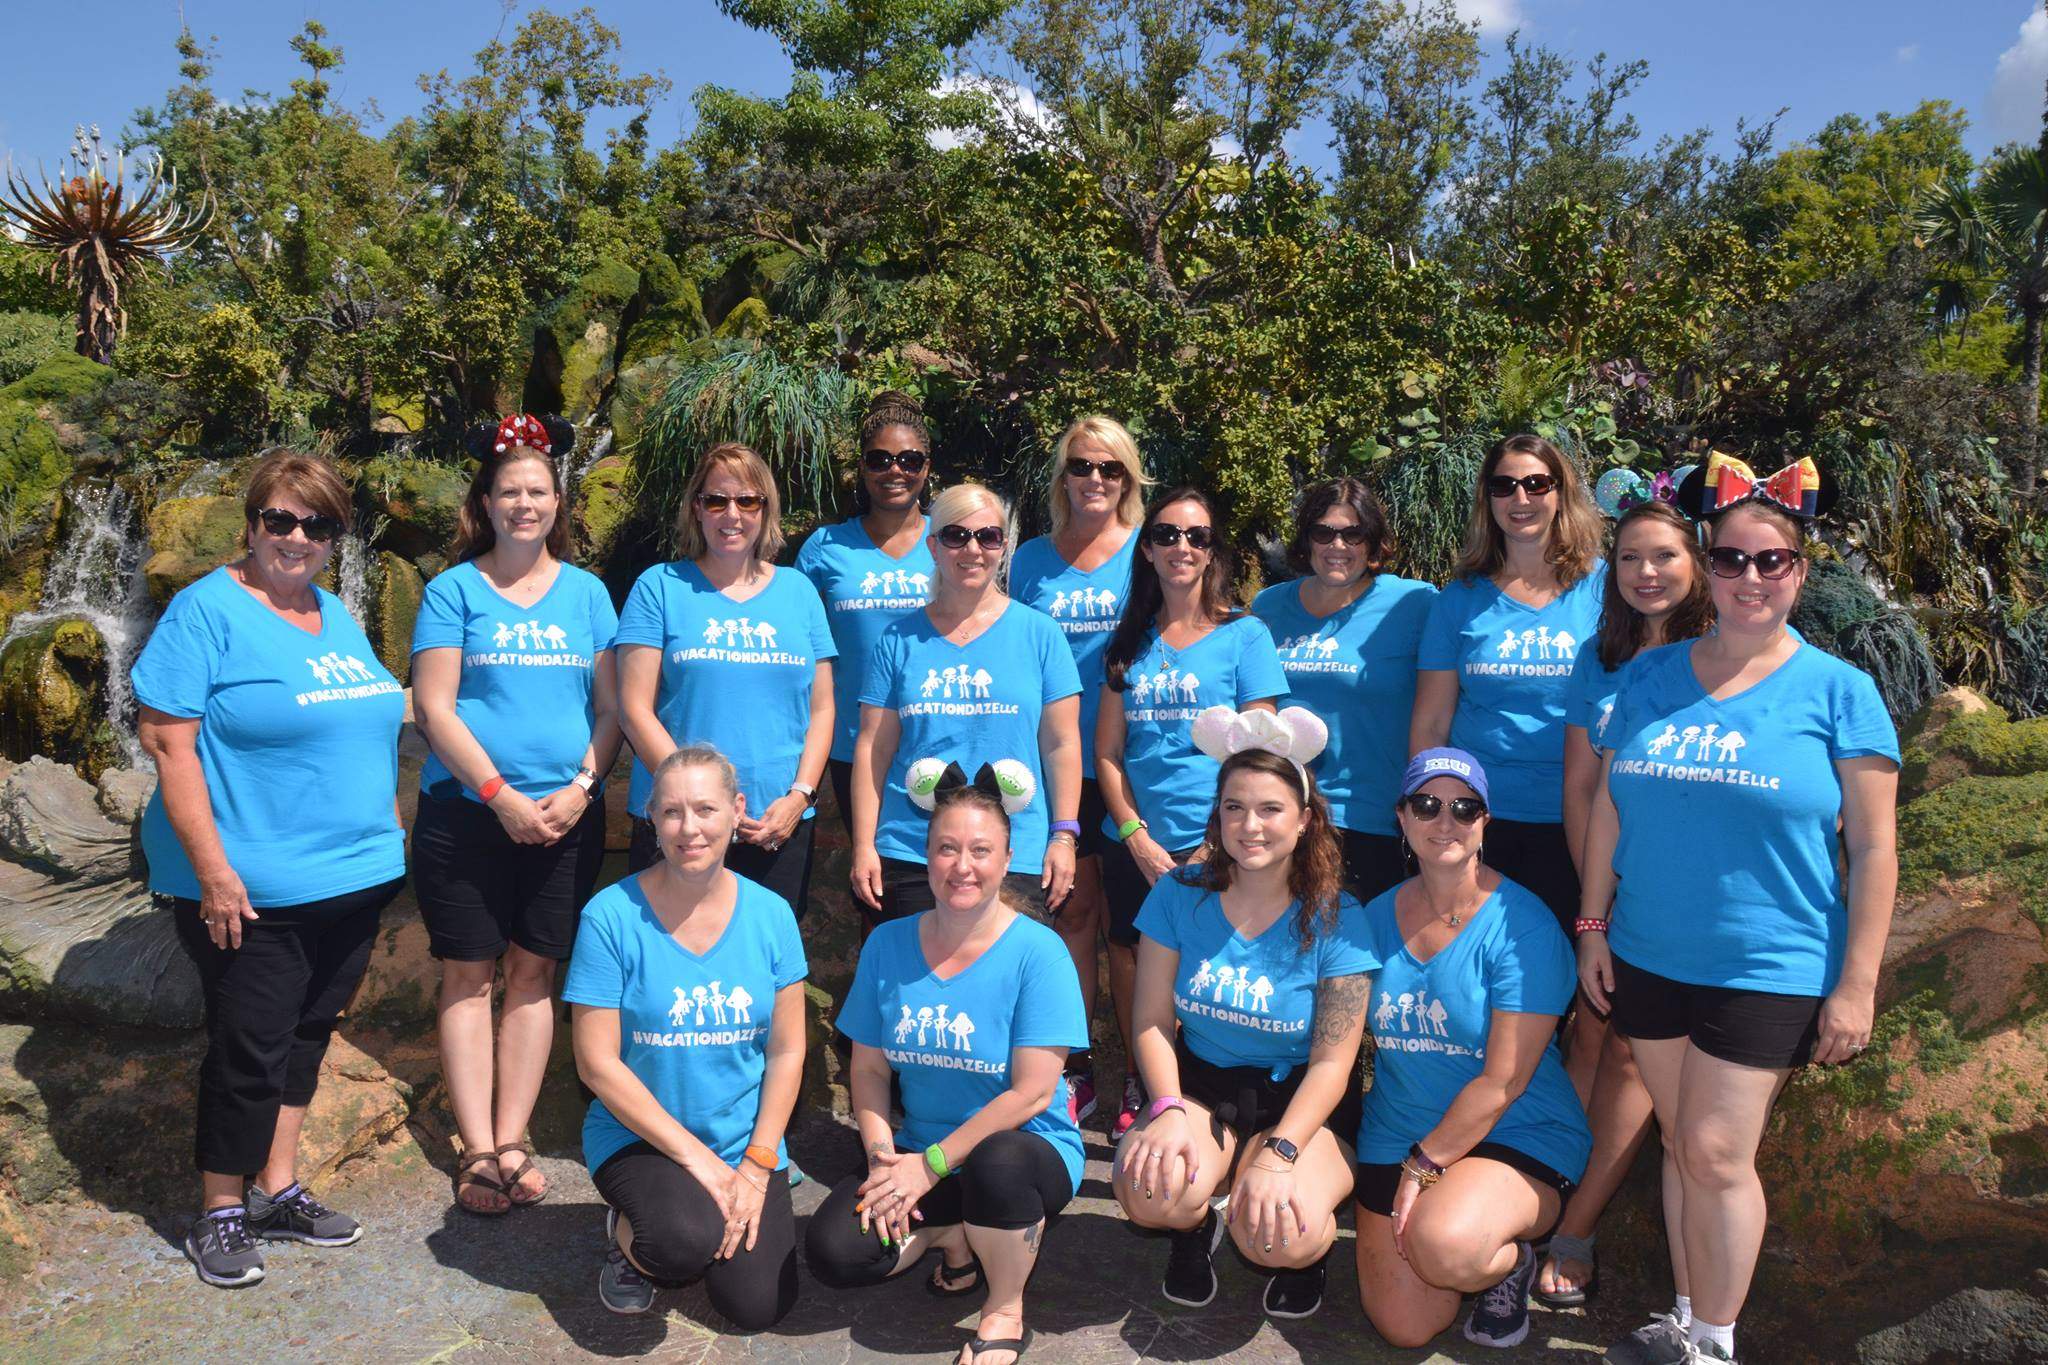 Our Vacation Daze team during a recent trip to Walt Disney World!!